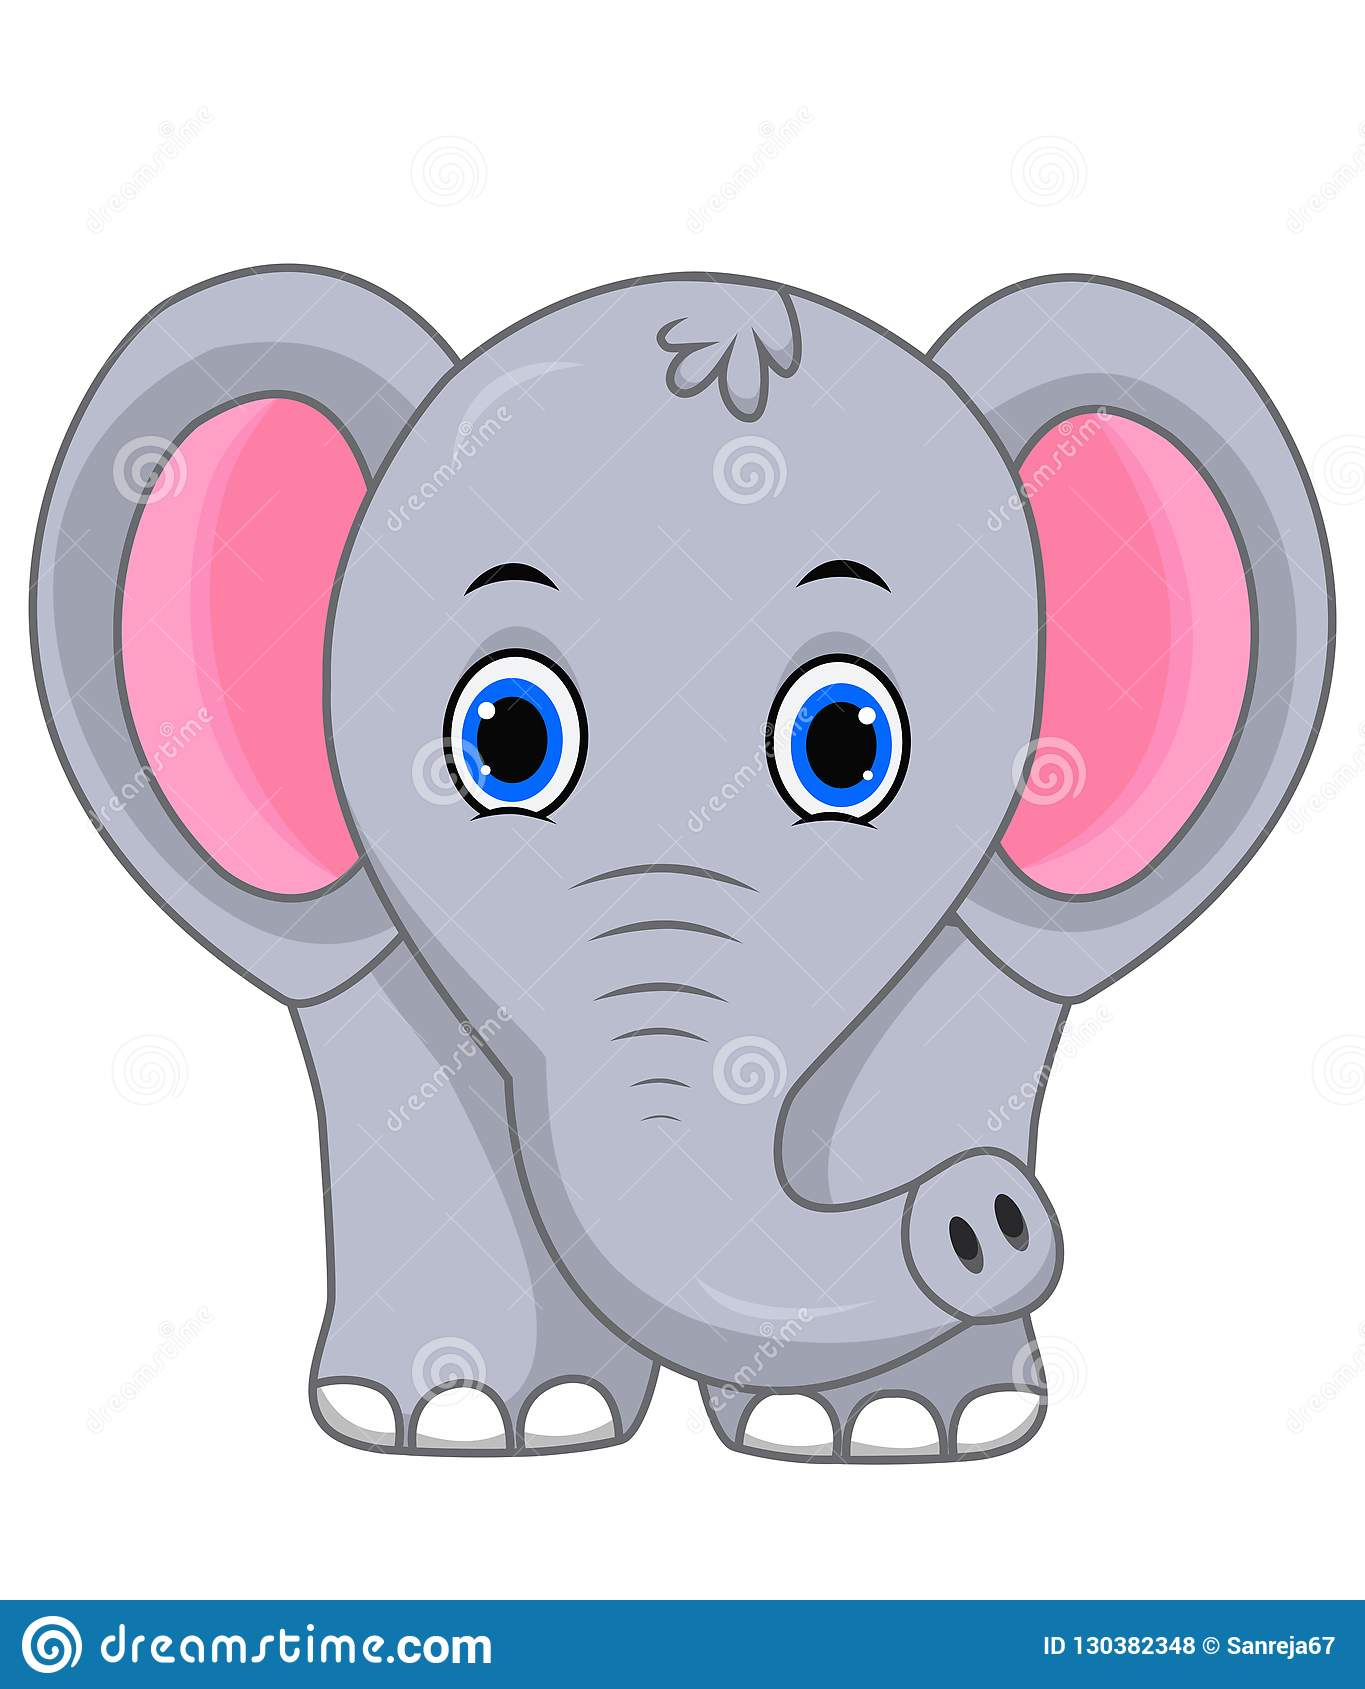 Cute Elephant Cartoon Stock Vector Illustration Of Forest 130382348